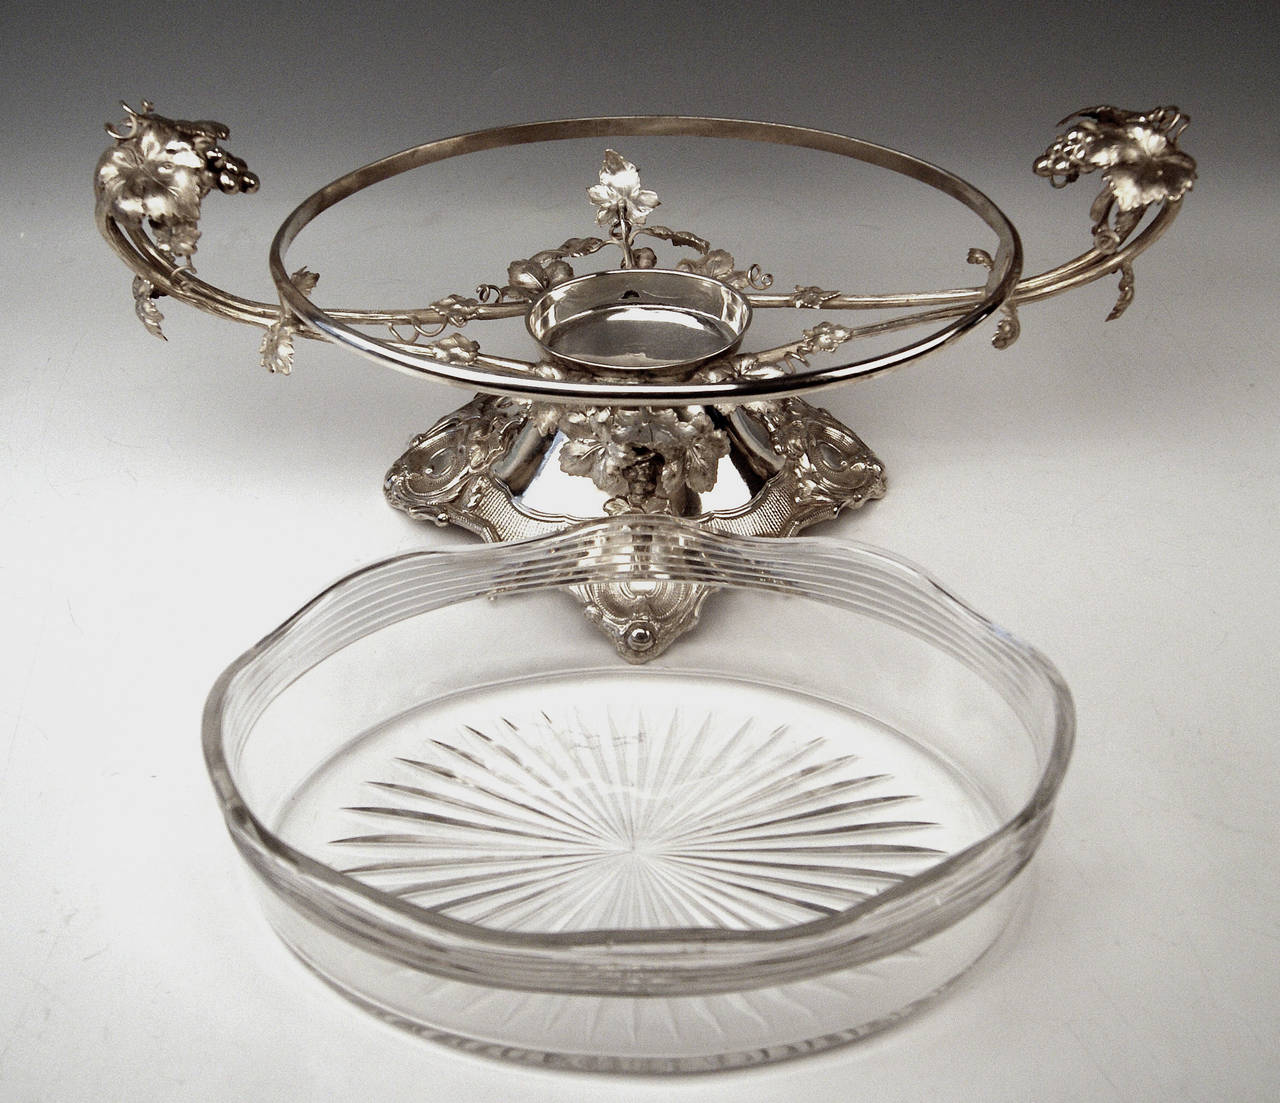 Huge German Silver Flower Bowl with Glass Liner by Nicolassen, circa 1870 5